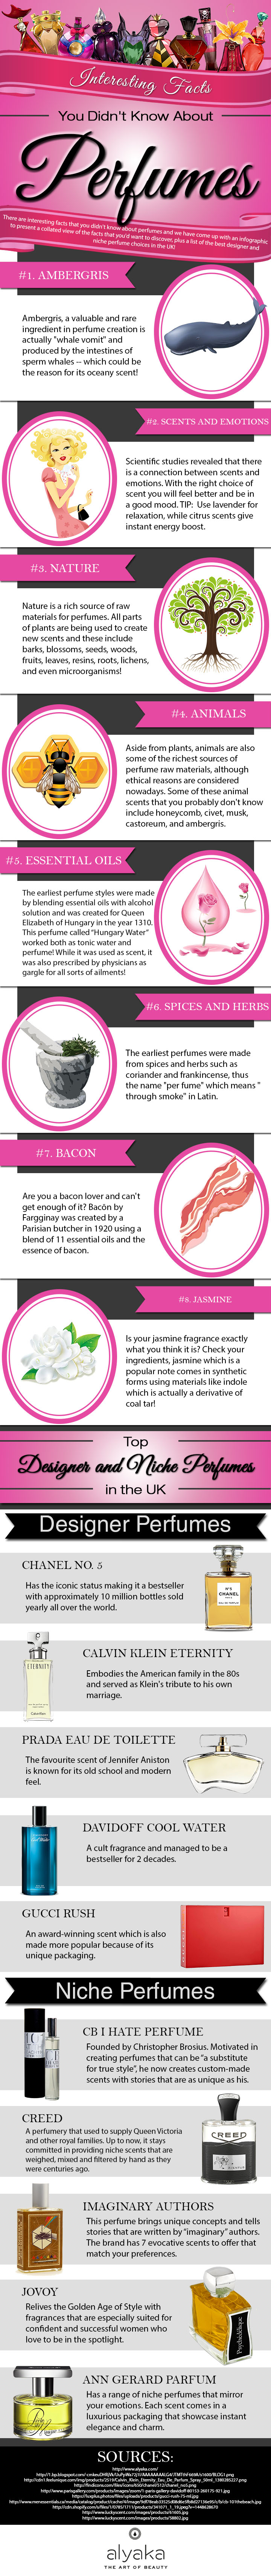 Interesting Perfume Facts